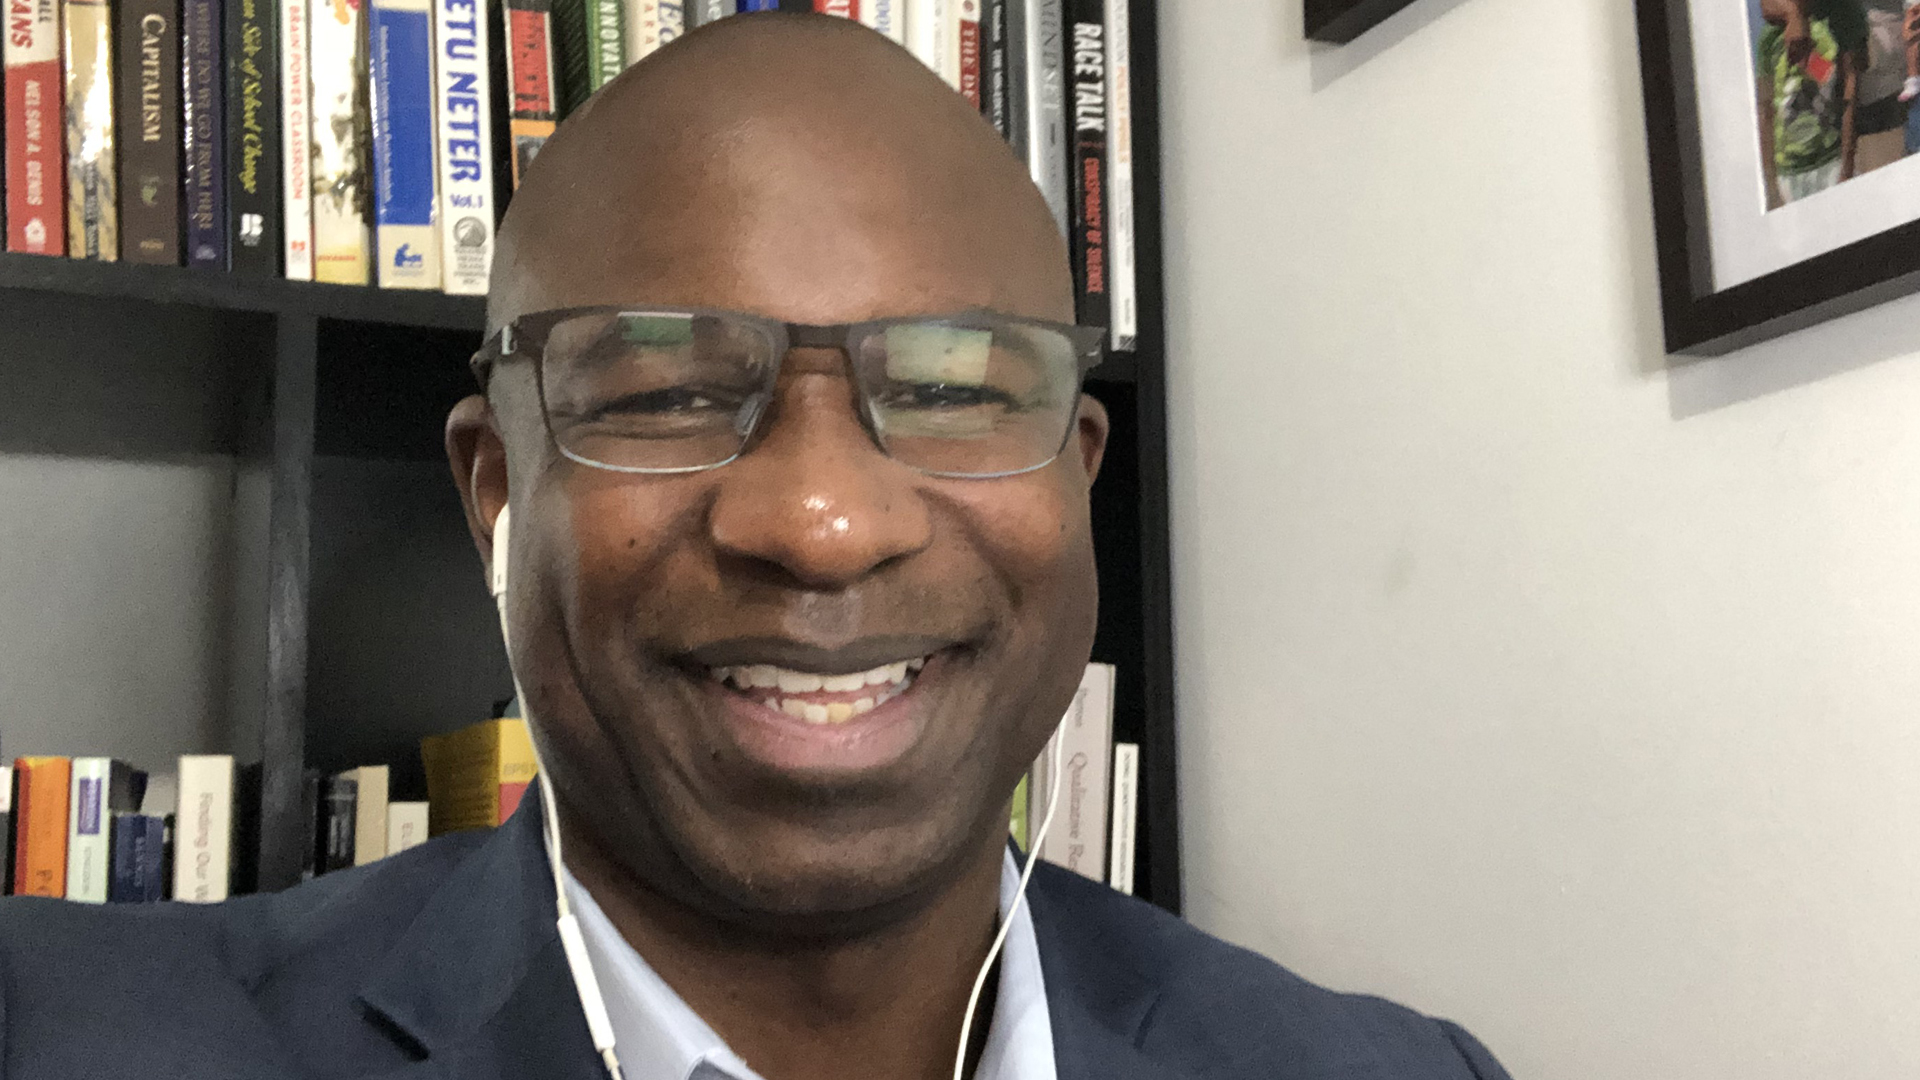 'The First Time' With Politician Jamaal Bowman